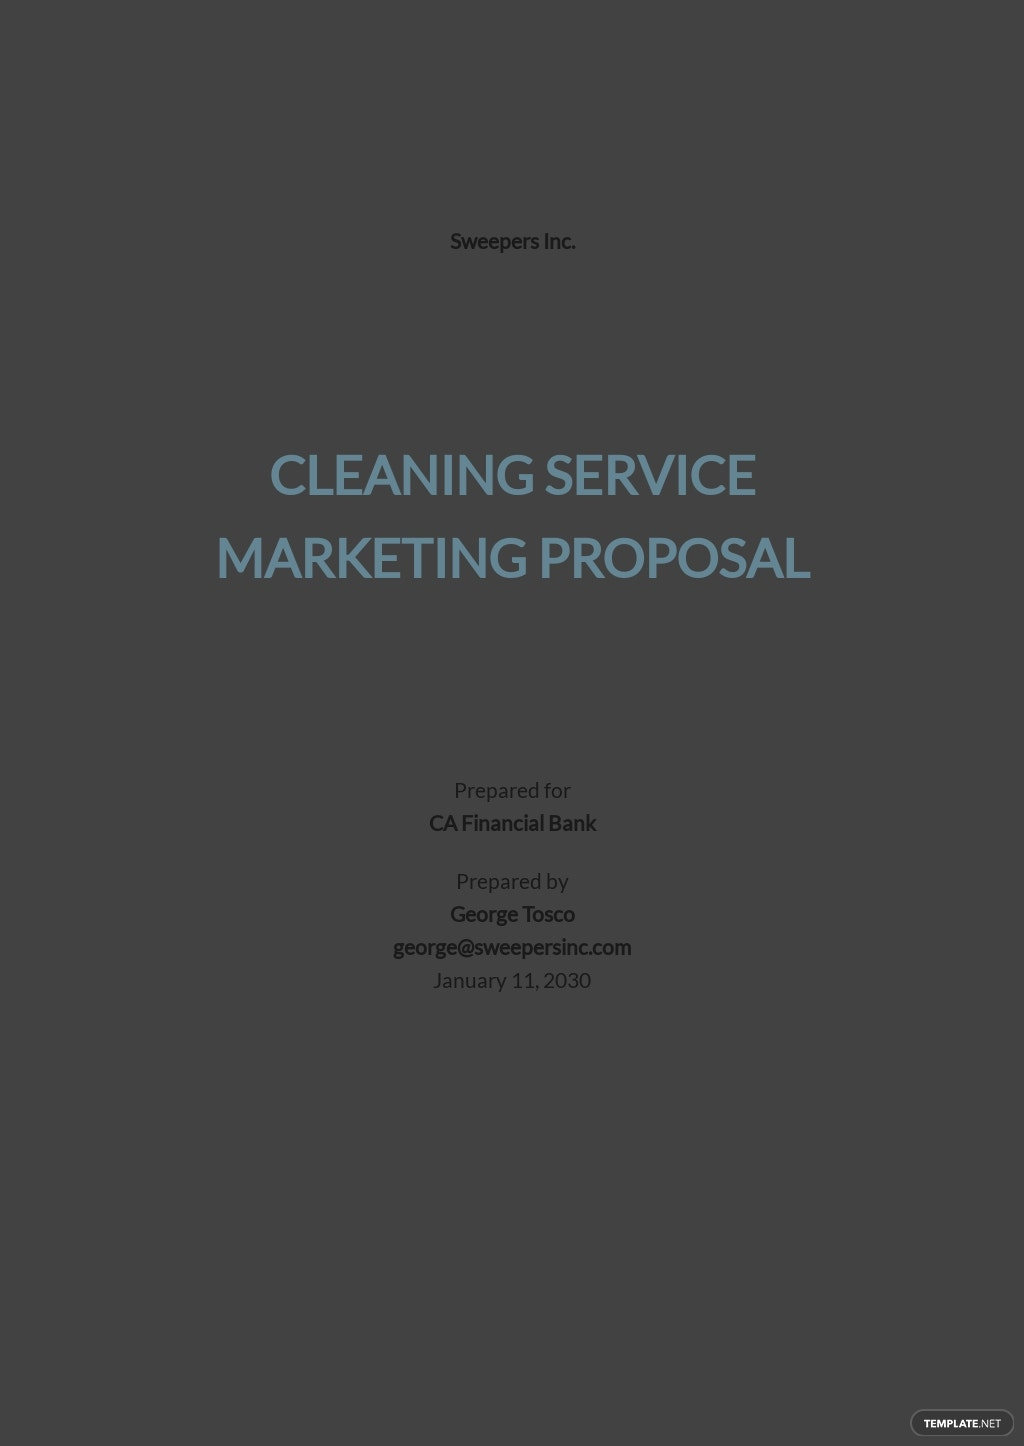 Cleaning Service Marketing Proposal Template.jpe